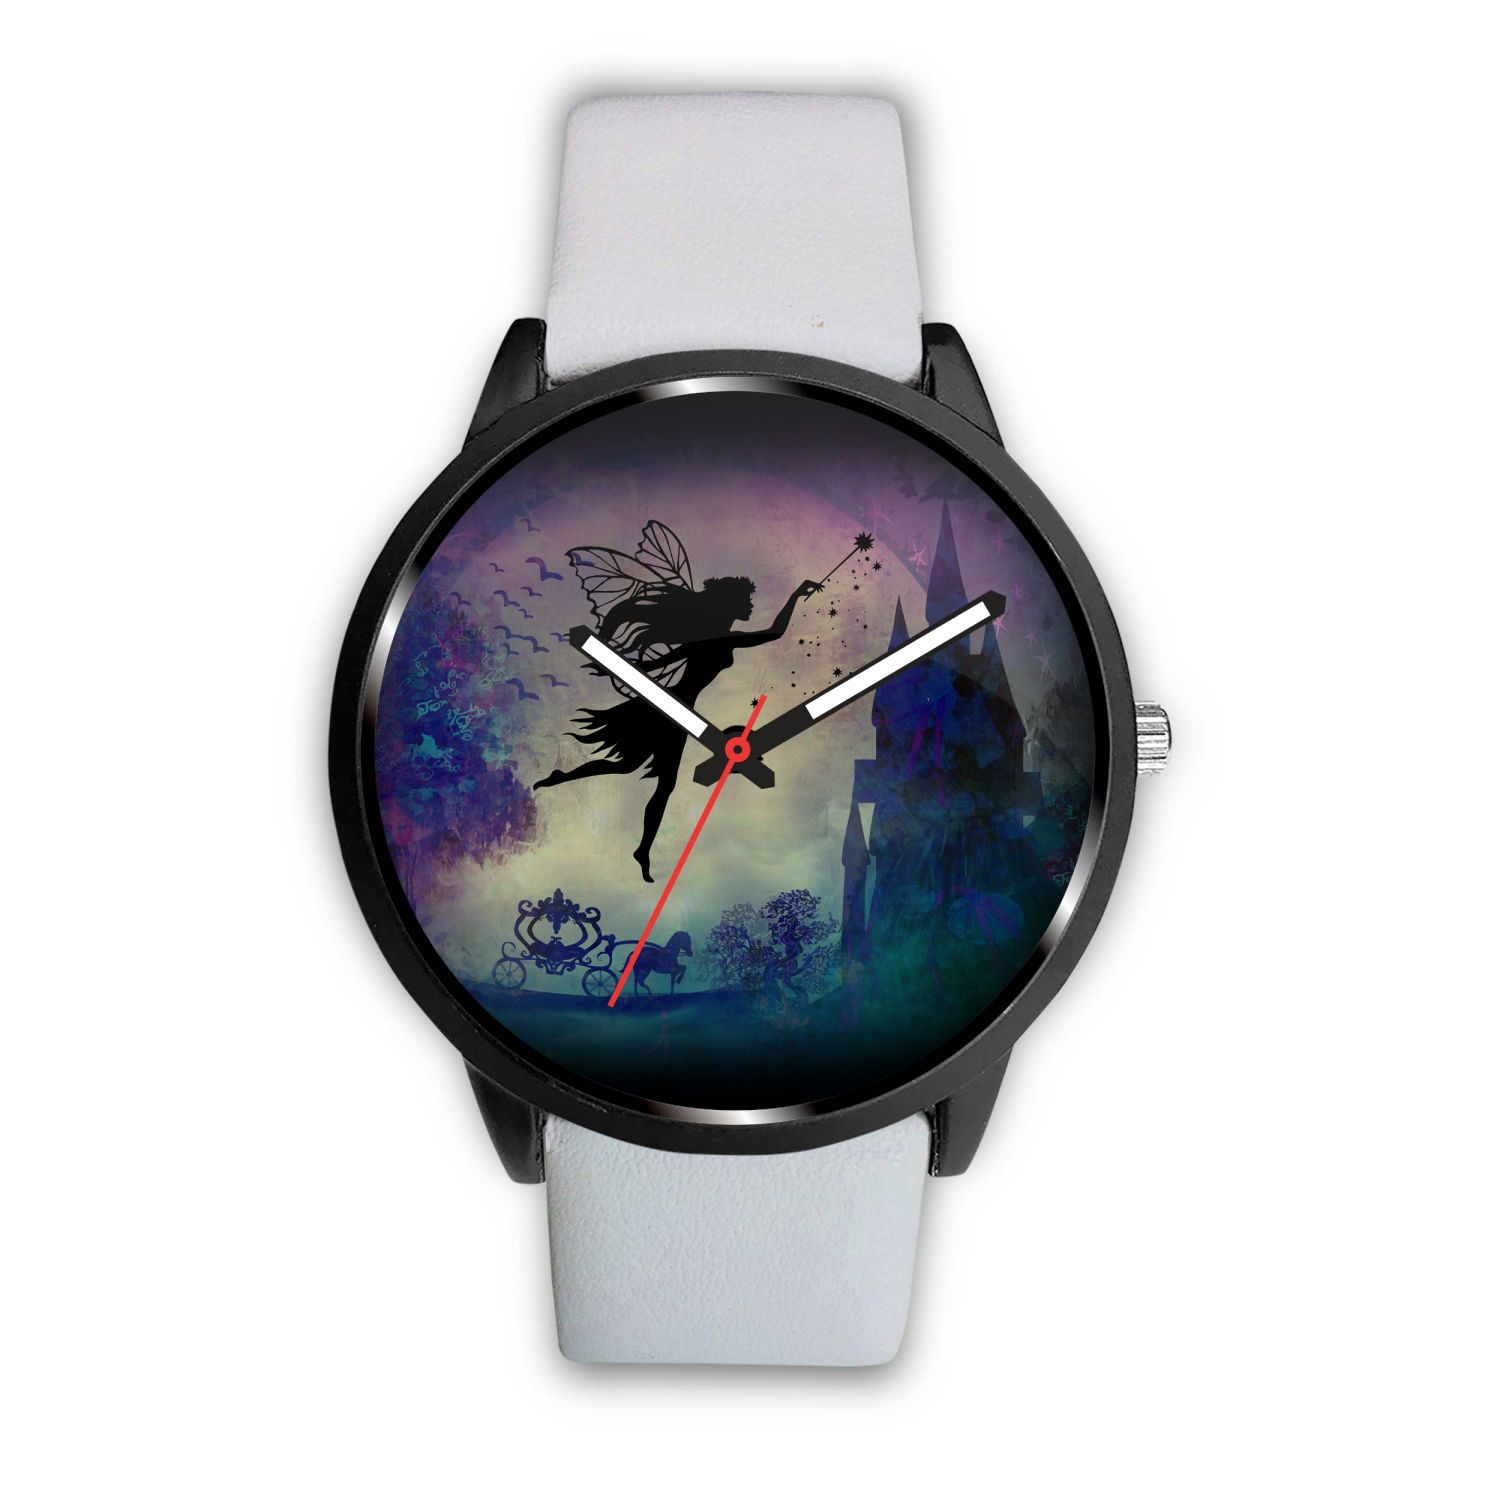 Fairytale Watch Watch Mens 40mm White